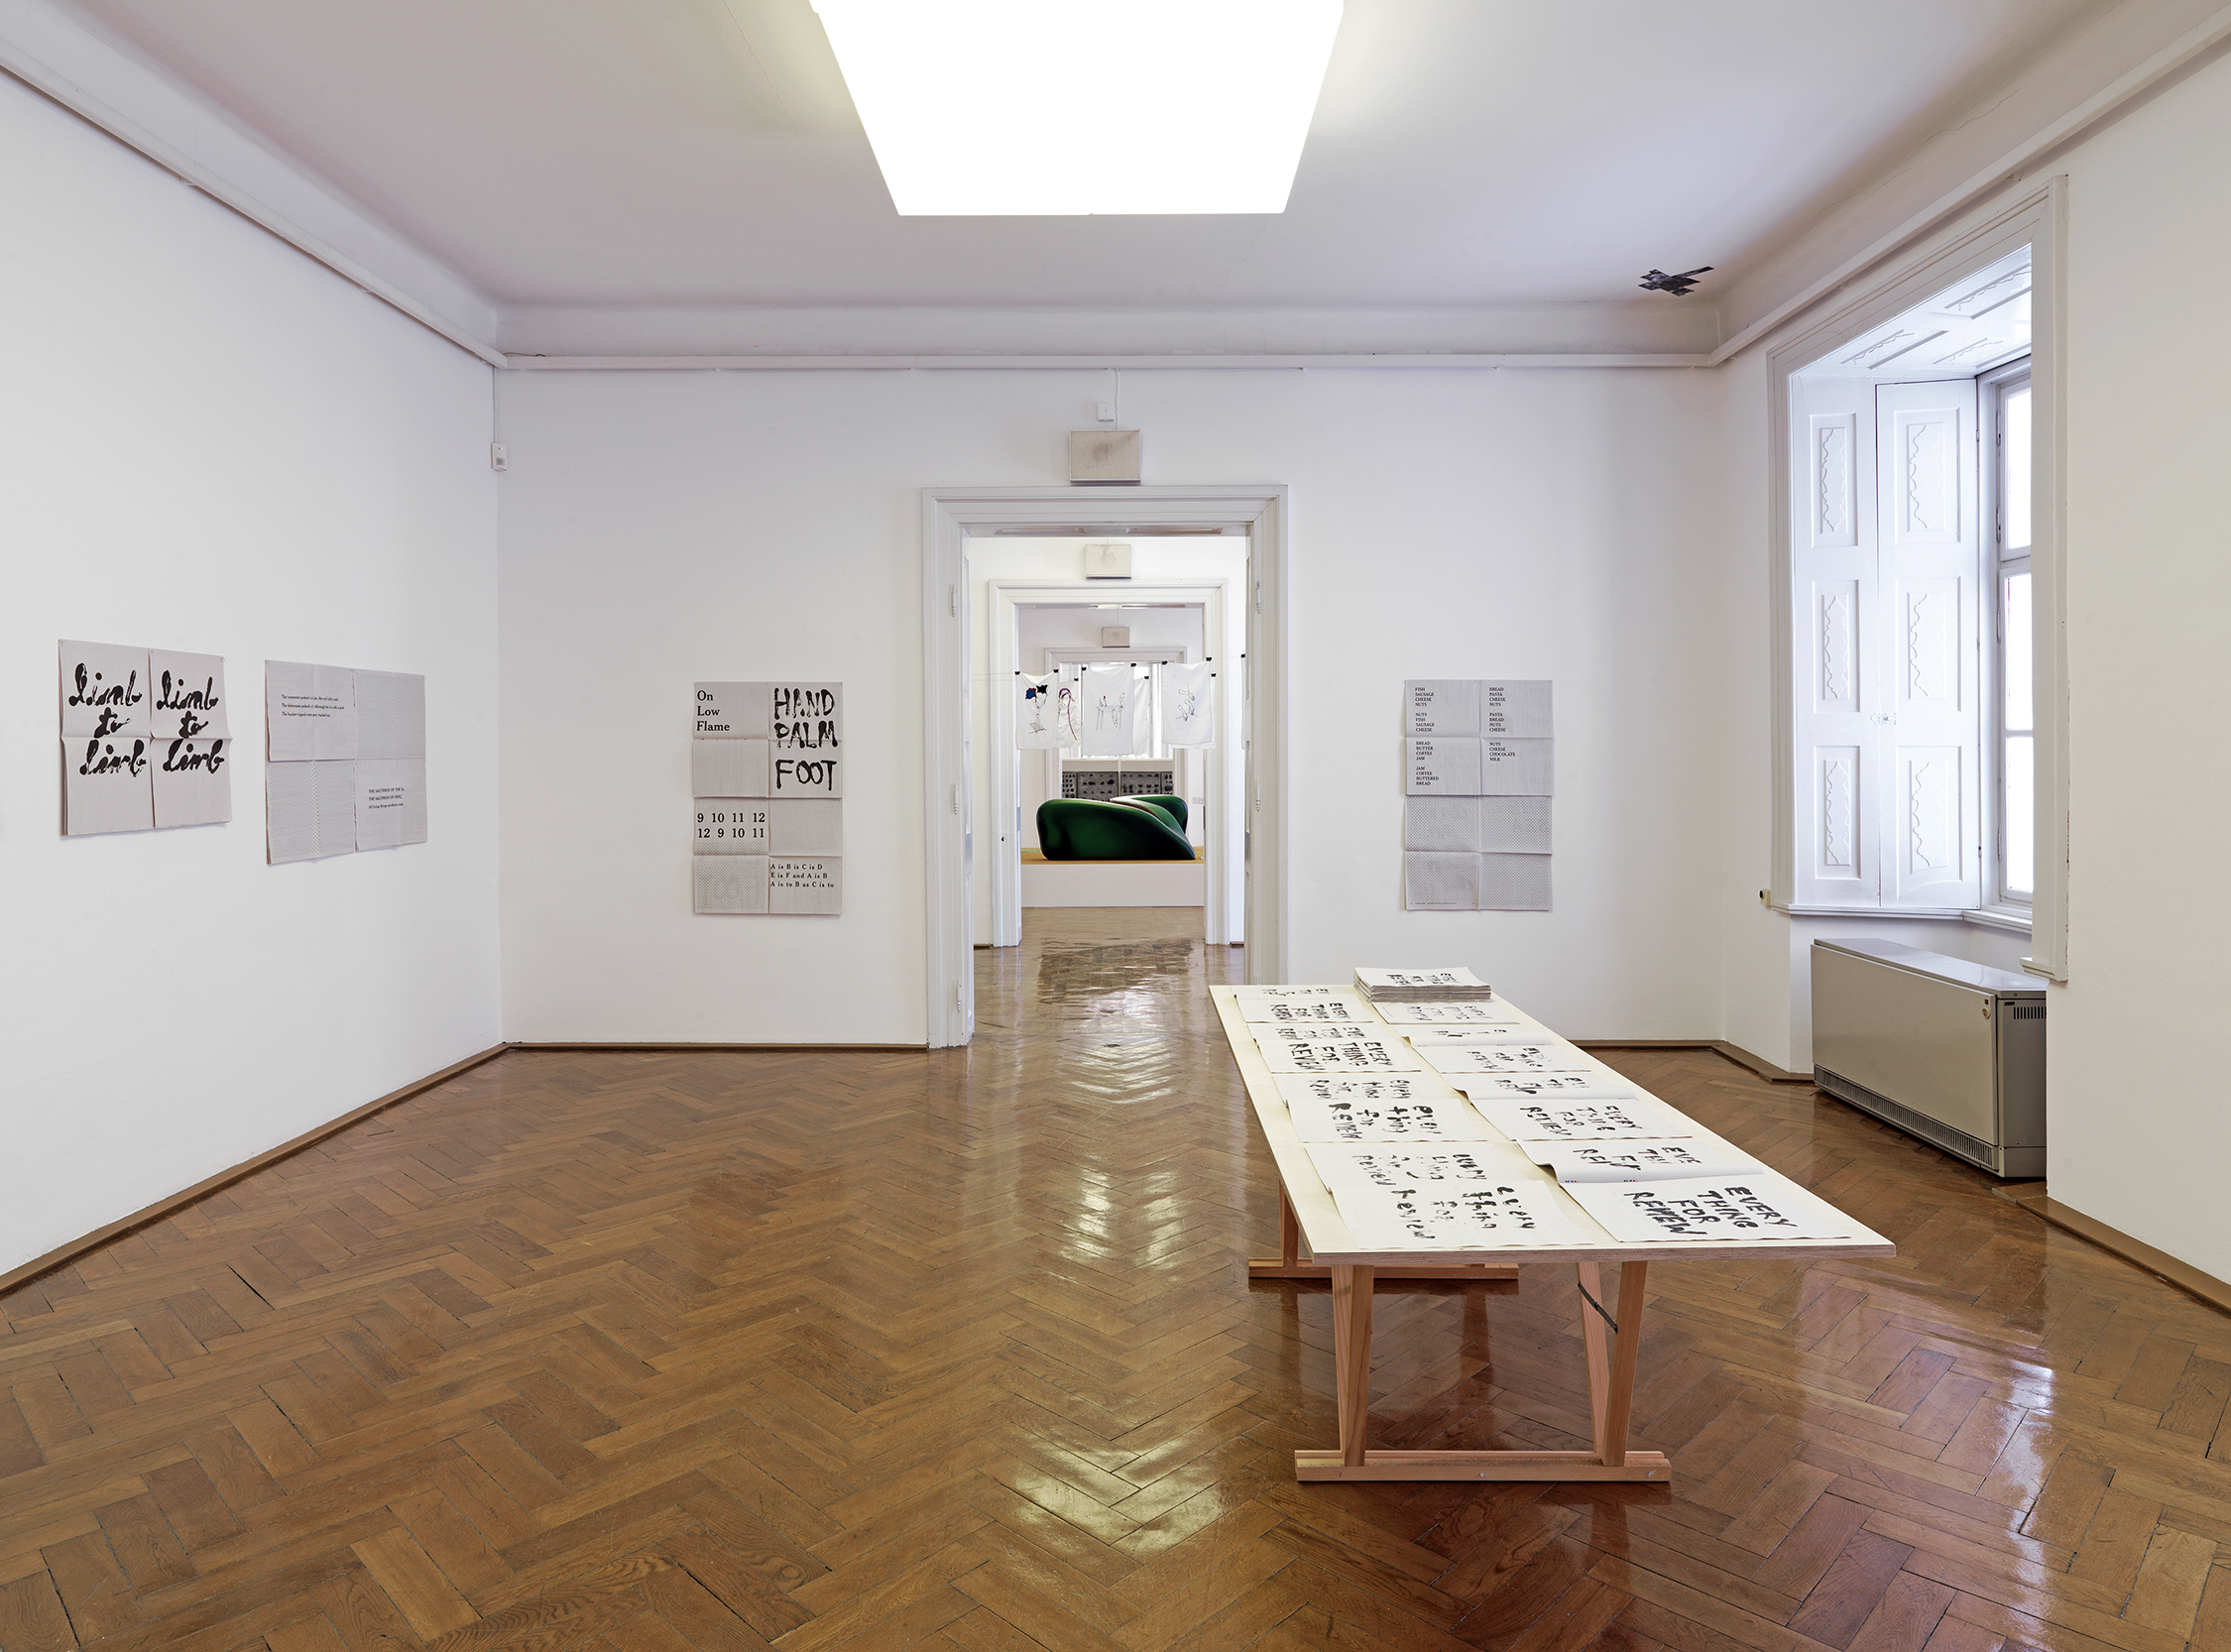 Jennifer Schmidt,  Reviewing the Review, Everything for Review - 2017  .  Installation View. 32. Biennial of Graphic Arts, International Centre for Graphic Arts, Ljubljana, Slovenia.